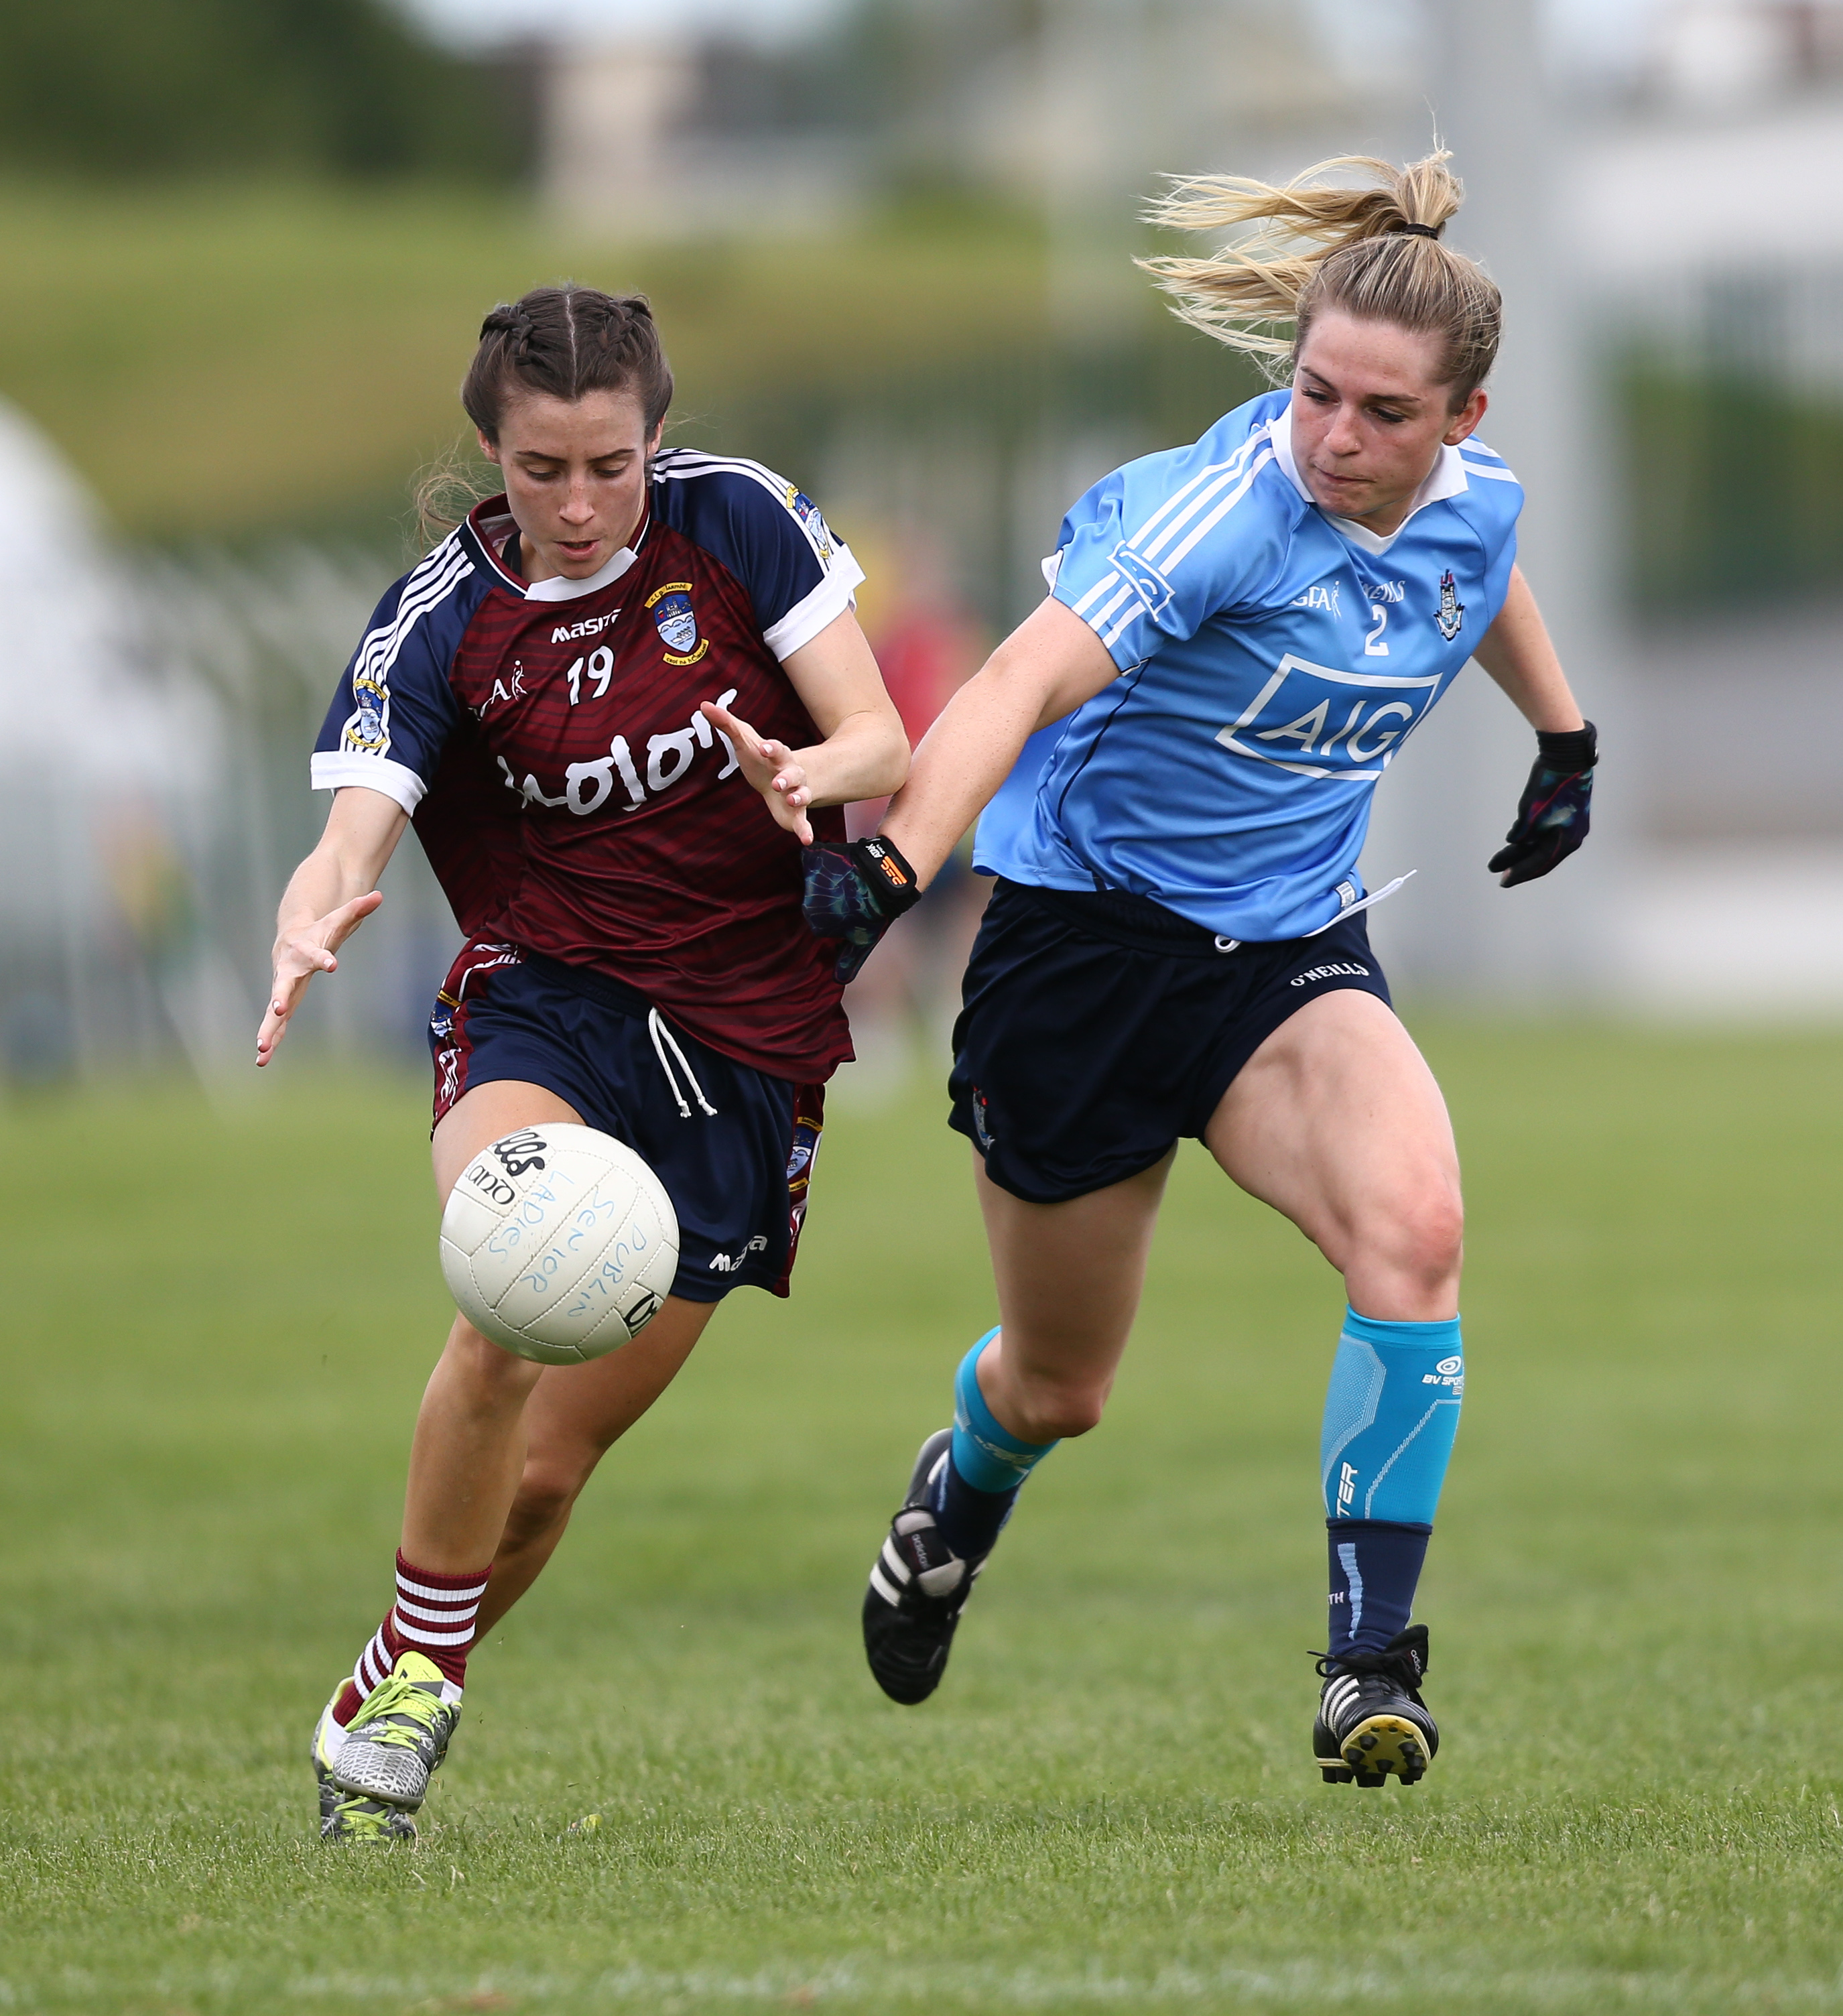 Dublin and Westmeath will take to the road this Sunday as the Lidl National League gets underway.